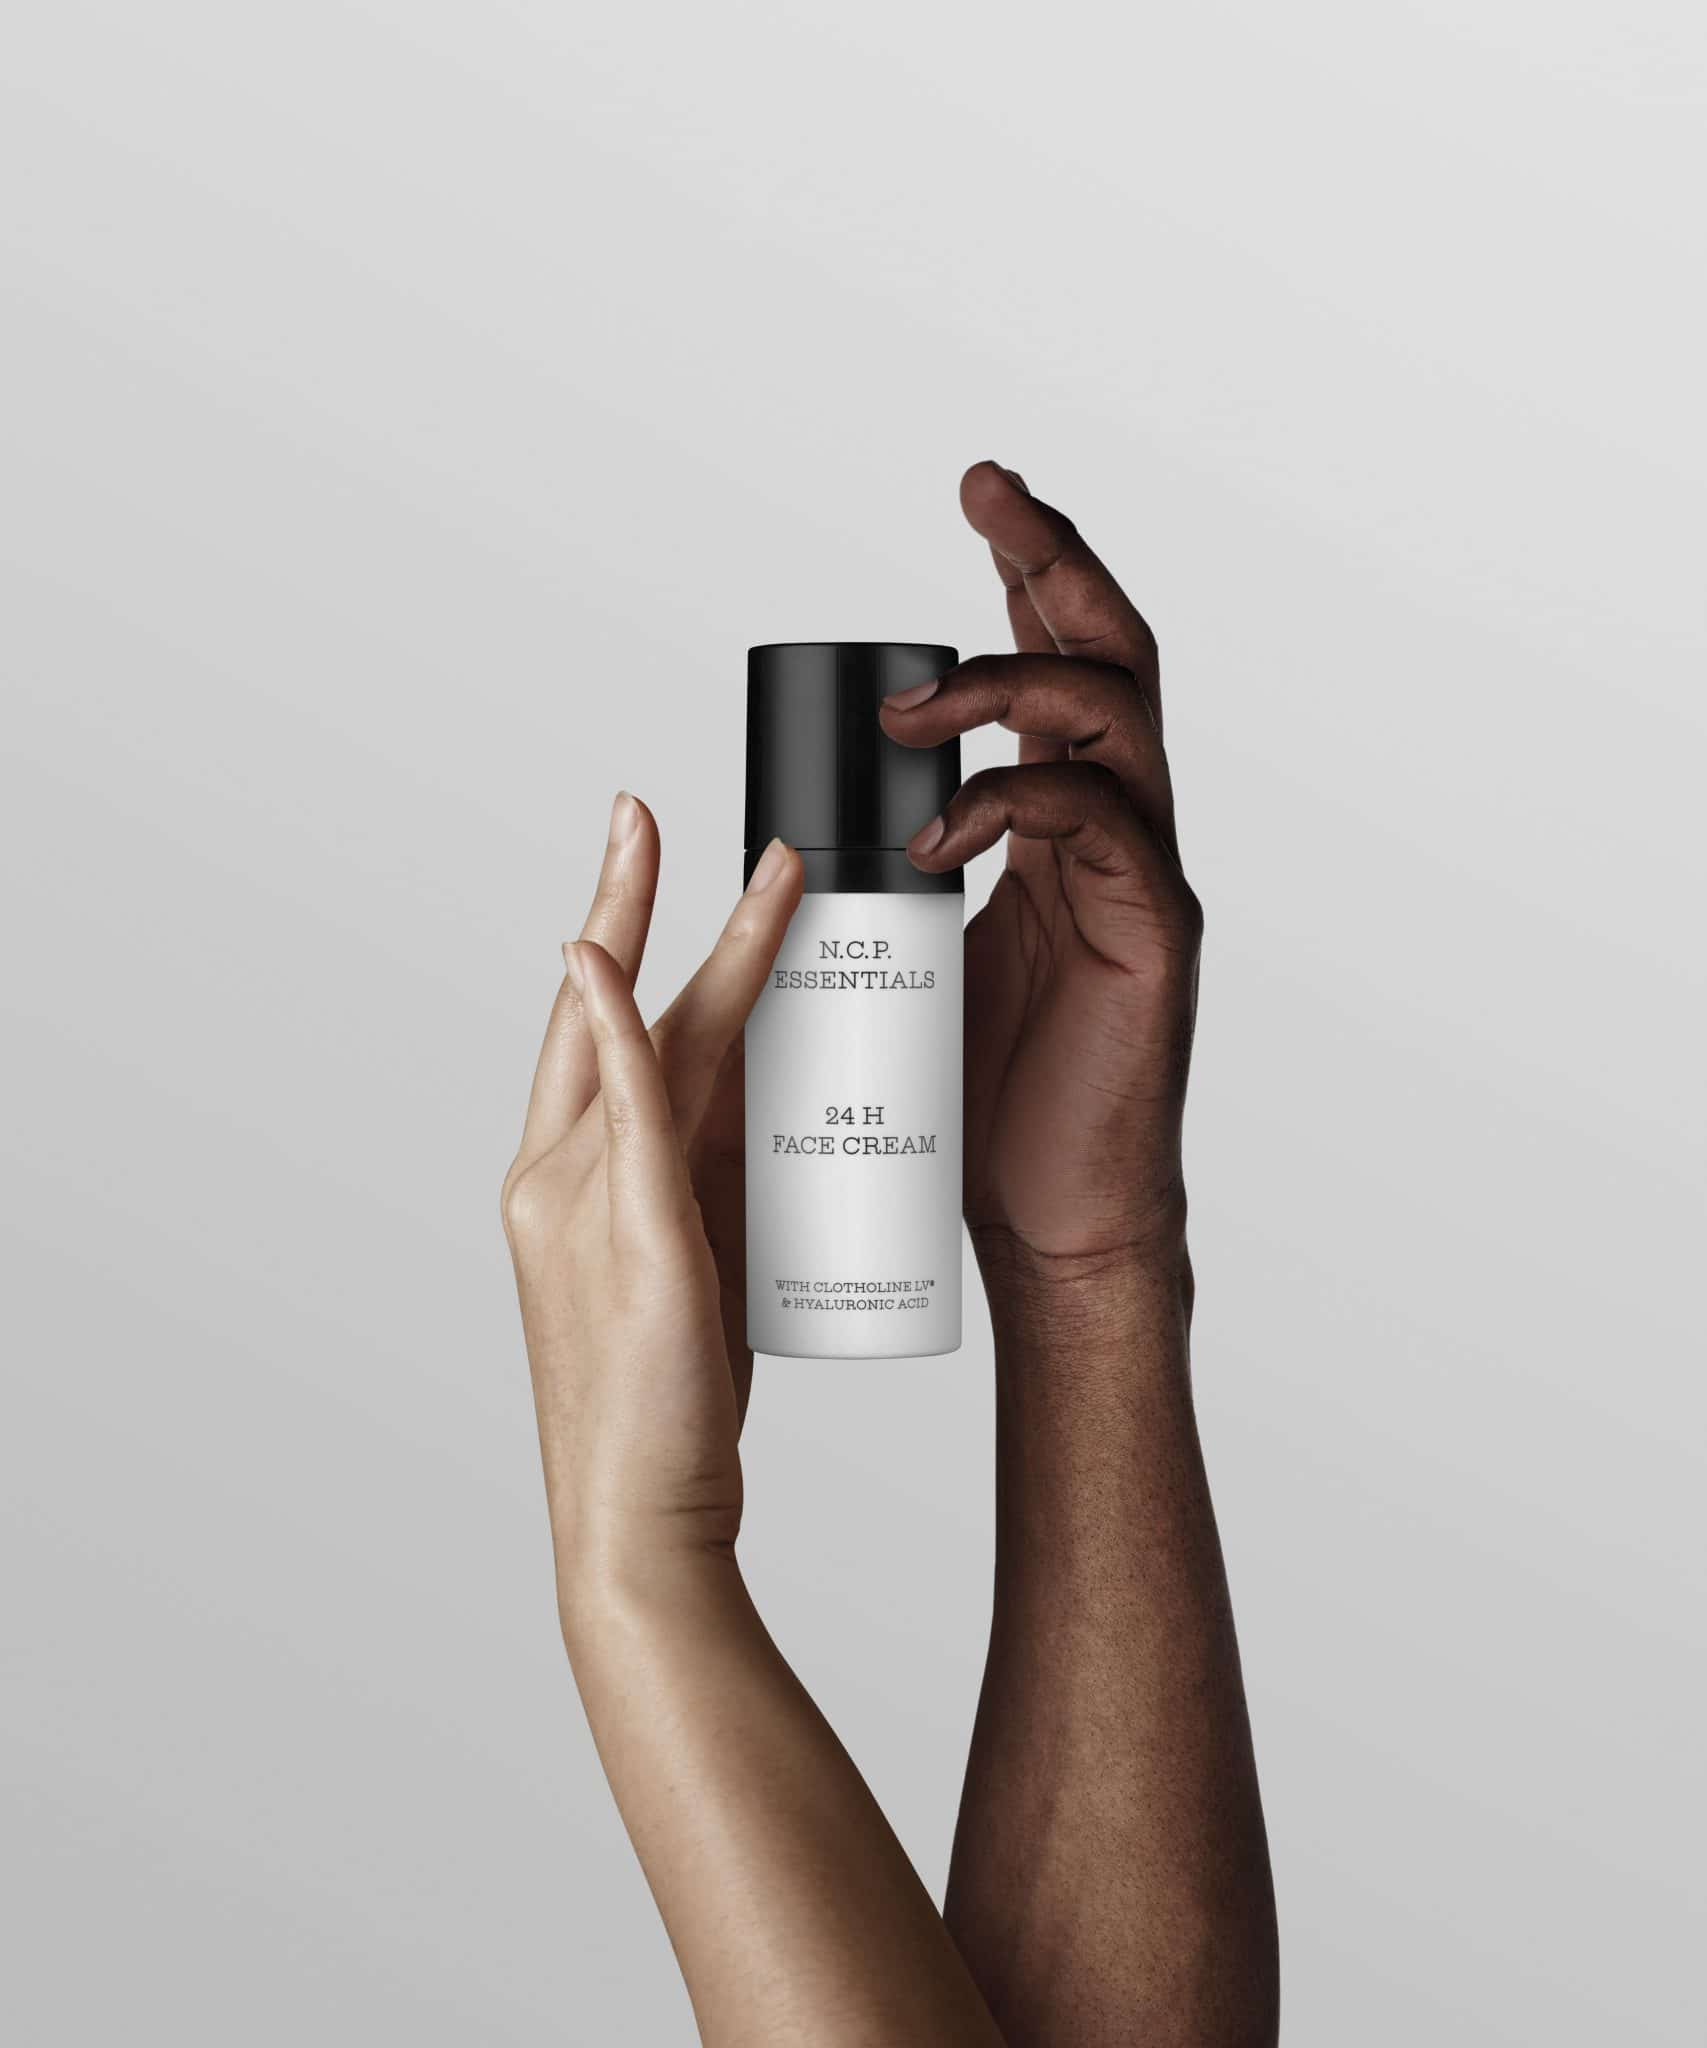 Day and night cream from N.C.P with one white and one black hand holding the product. A withe bottle with black text and a black cap. 24 H Face Cream.